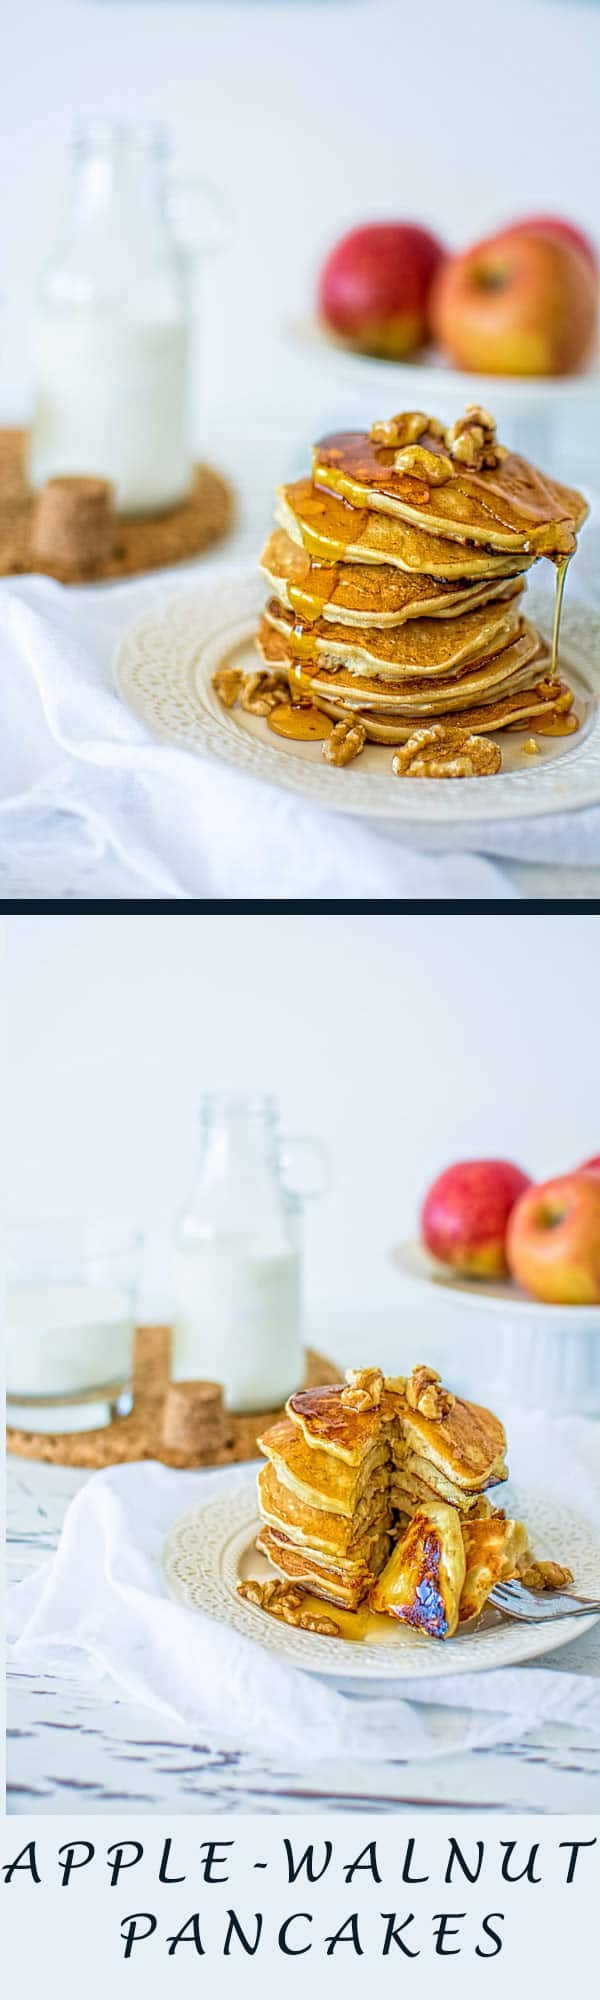 Cinnamon Apple Walnut Pancakes Recipes — Dishmaps